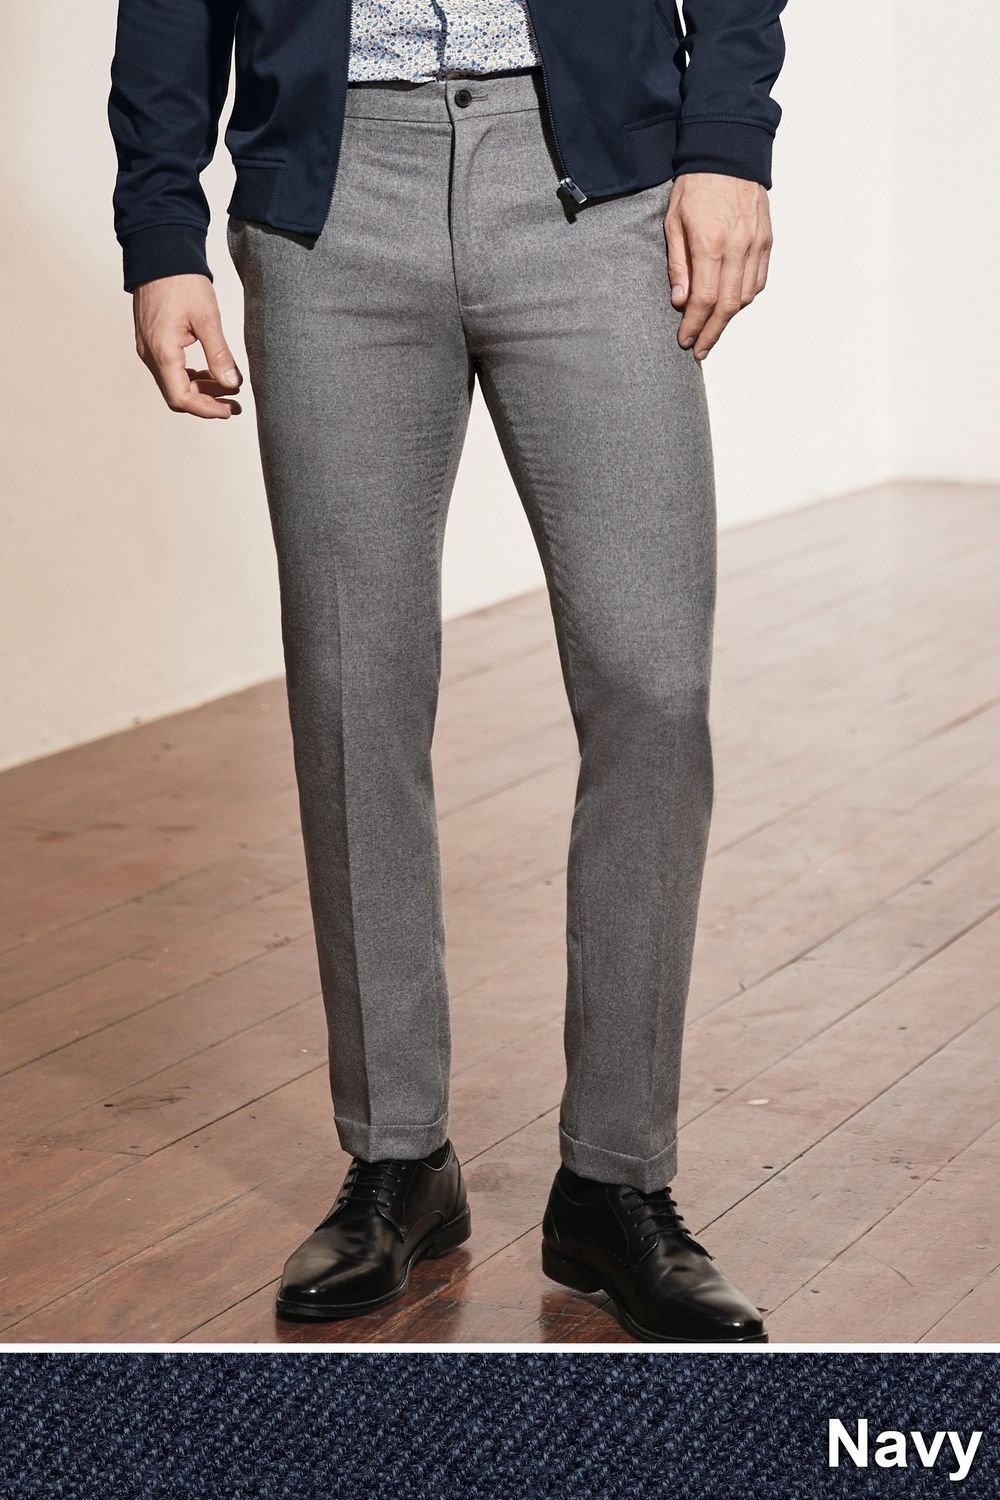 dc04fdc556a Next Brushed Twill Trousers - Skinny Fit Online